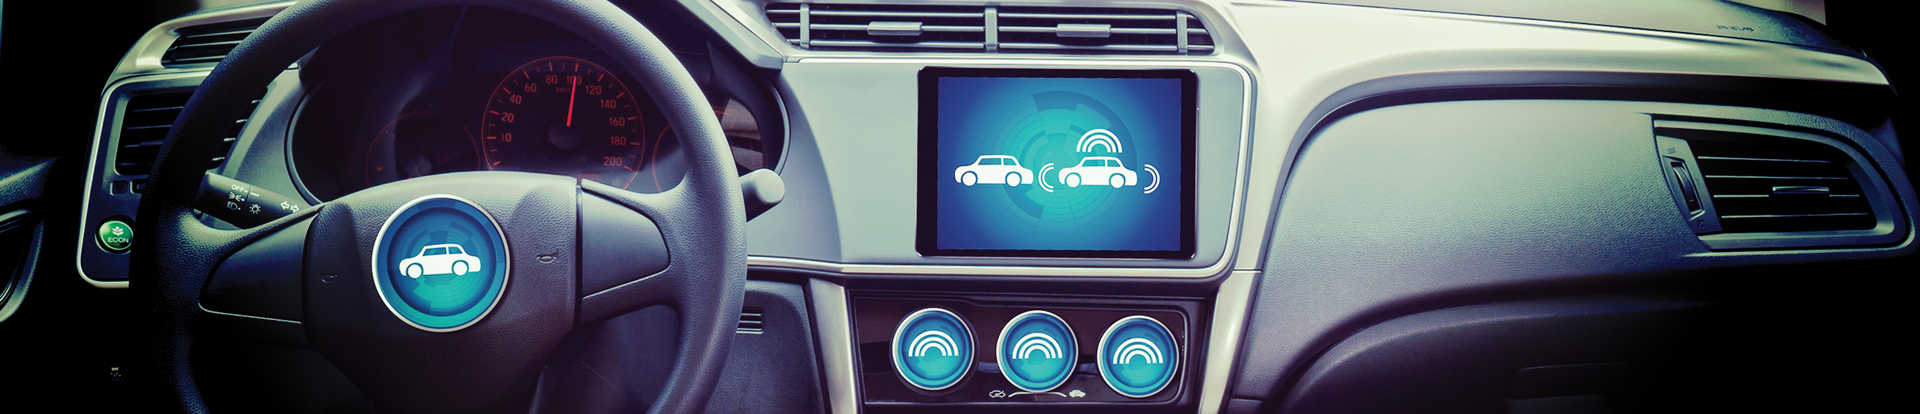 Dashboard with automated driving systems